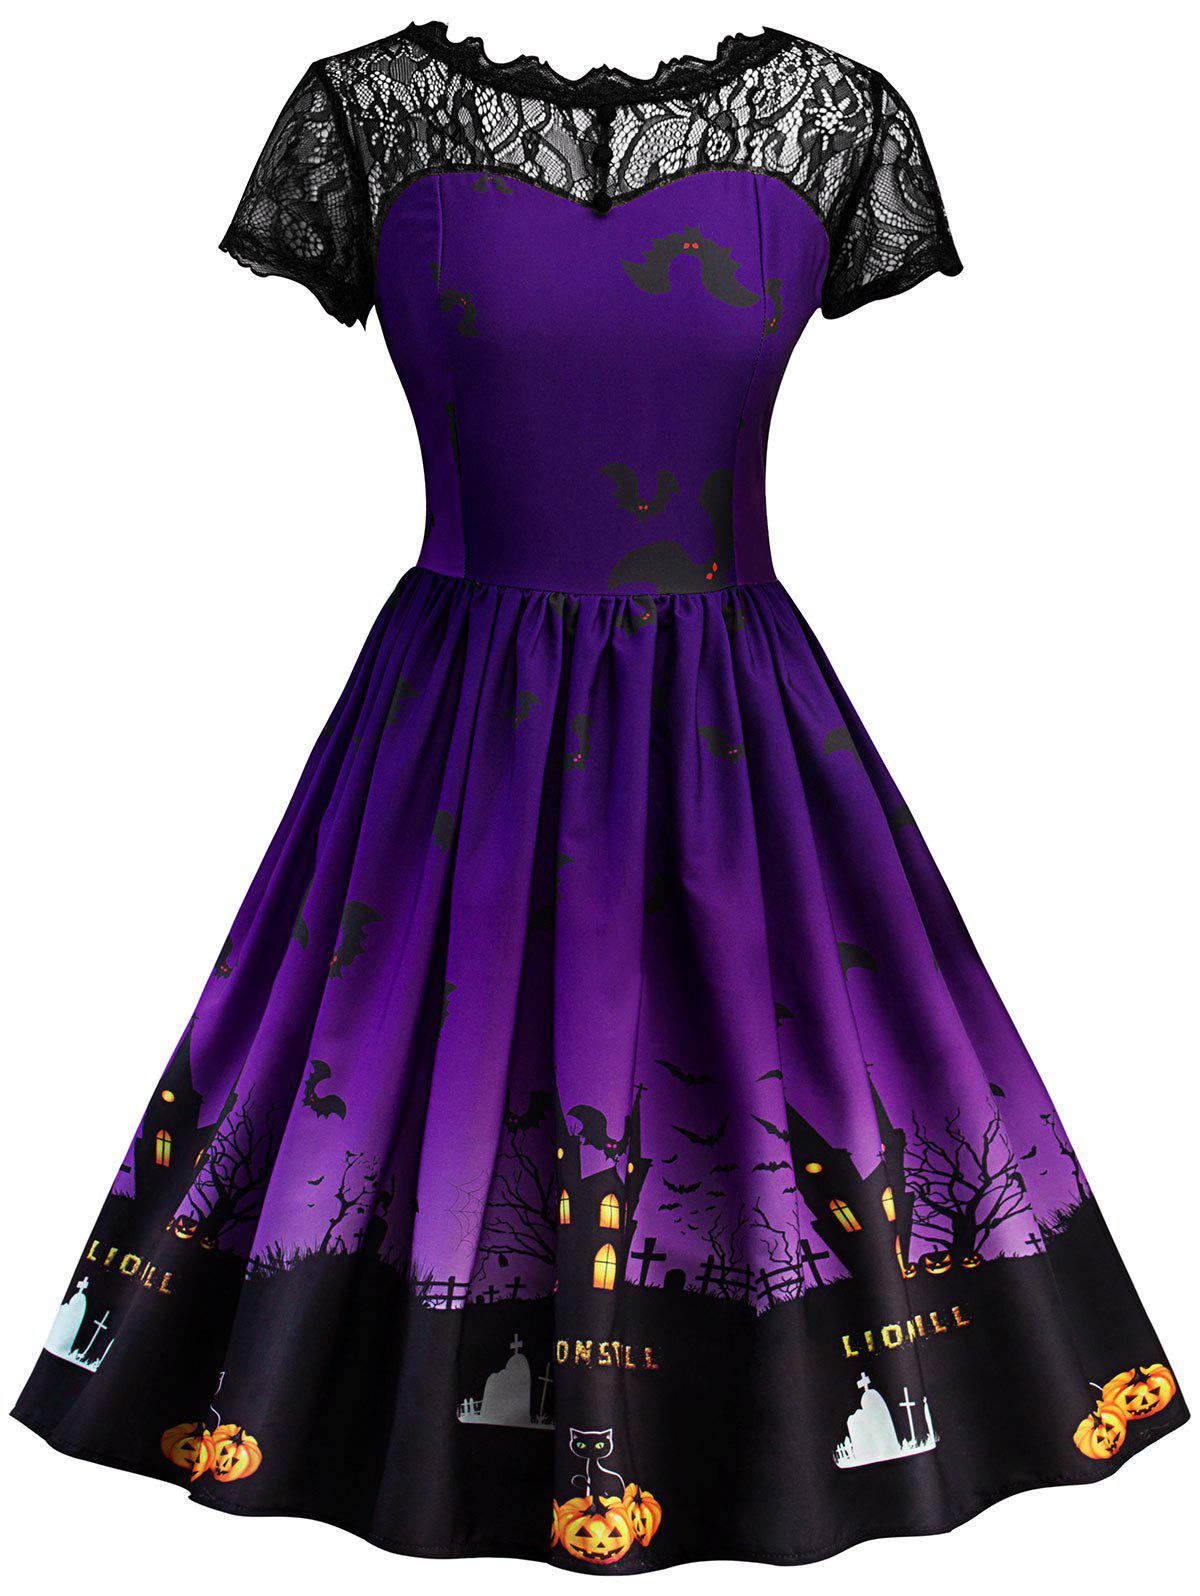 Vintage Lace Insert Halloween DressWOMEN<br><br>Size: L; Color: PURPLE; Style: Vintage; Material: Cotton,Polyester; Silhouette: A-Line; Dress Type: Fit and Flare Dress,Skater Dress,Swing Dress; Dresses Length: Knee-Length; Neckline: Round Collar; Sleeve Length: Short Sleeves; Pattern Type: Patchwork,Print; With Belt: No; Season: Fall,Spring; Weight: 0.4000kg; Package Contents: 1 x Dress;